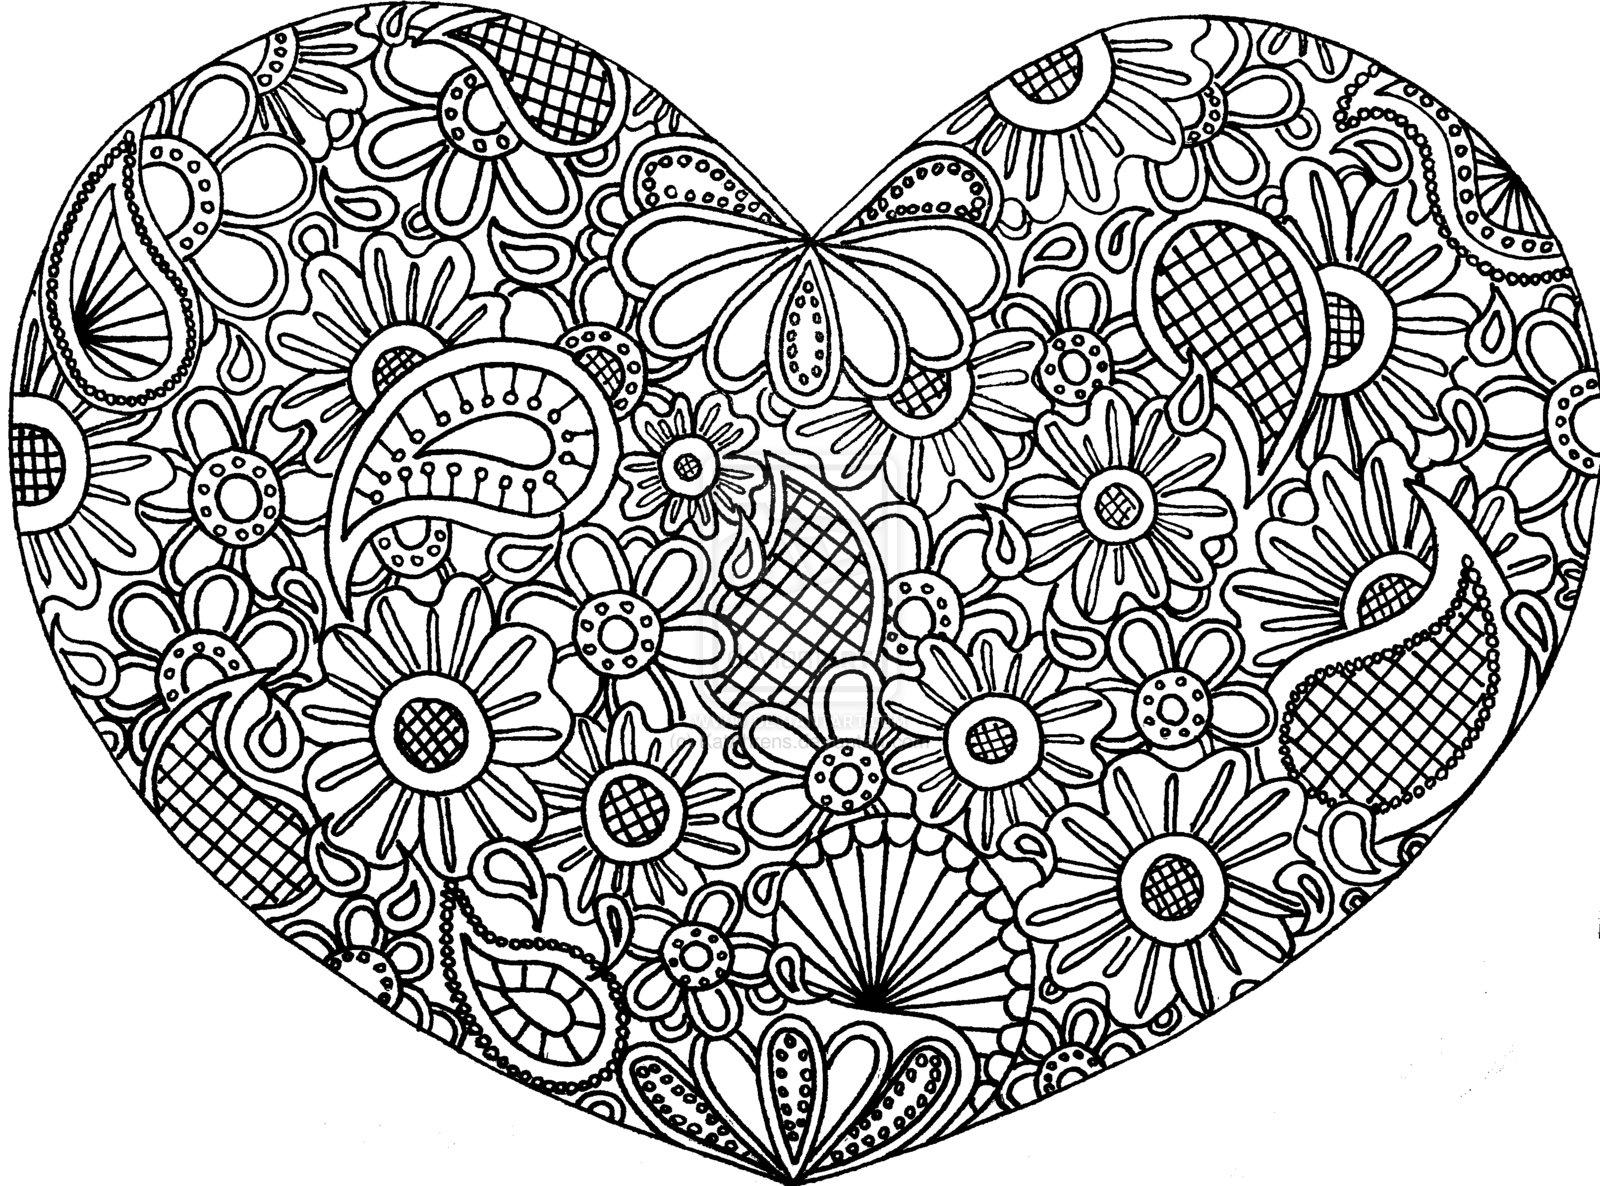 Pin by Tereza Perou on colouring pages  Abstract coloring pages